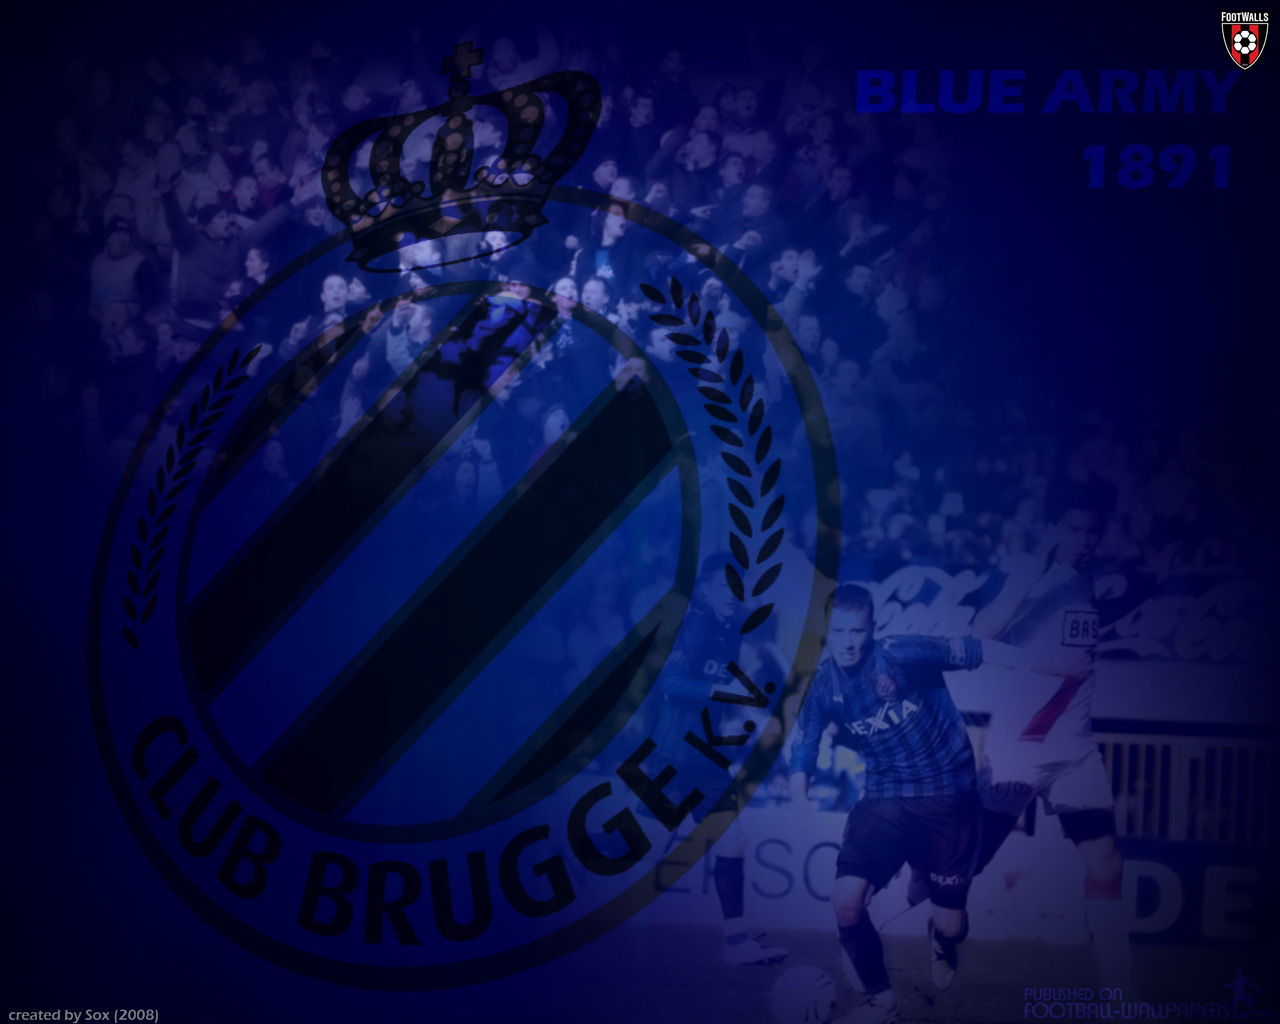 Club Brugge Wallpaper 13 Football Wallpapers